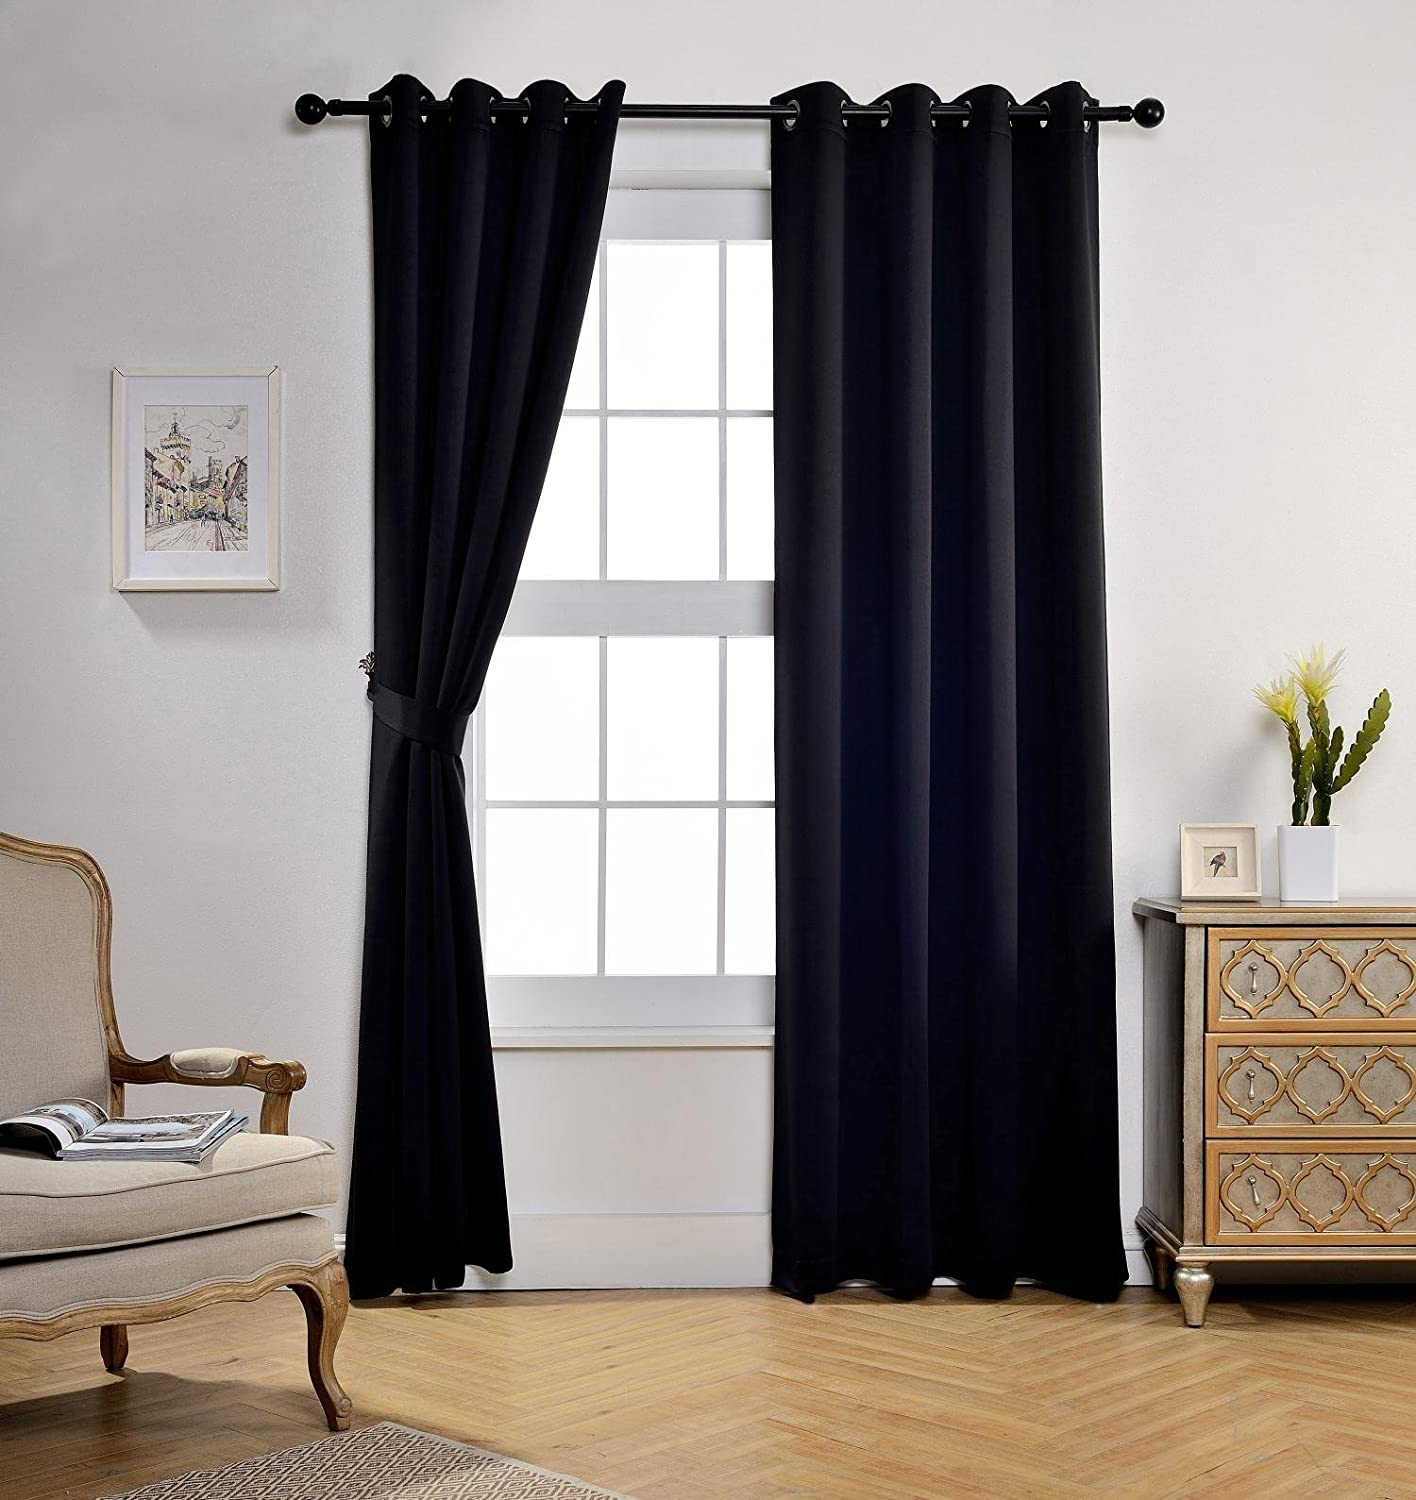 Bonus 2 Tie Backs Included Miuco Room Darkening Grommet Thermal Insulated Blackout Window Curtains Panels for Gilrs Room Window 1 Pair 52x63 Inch Black